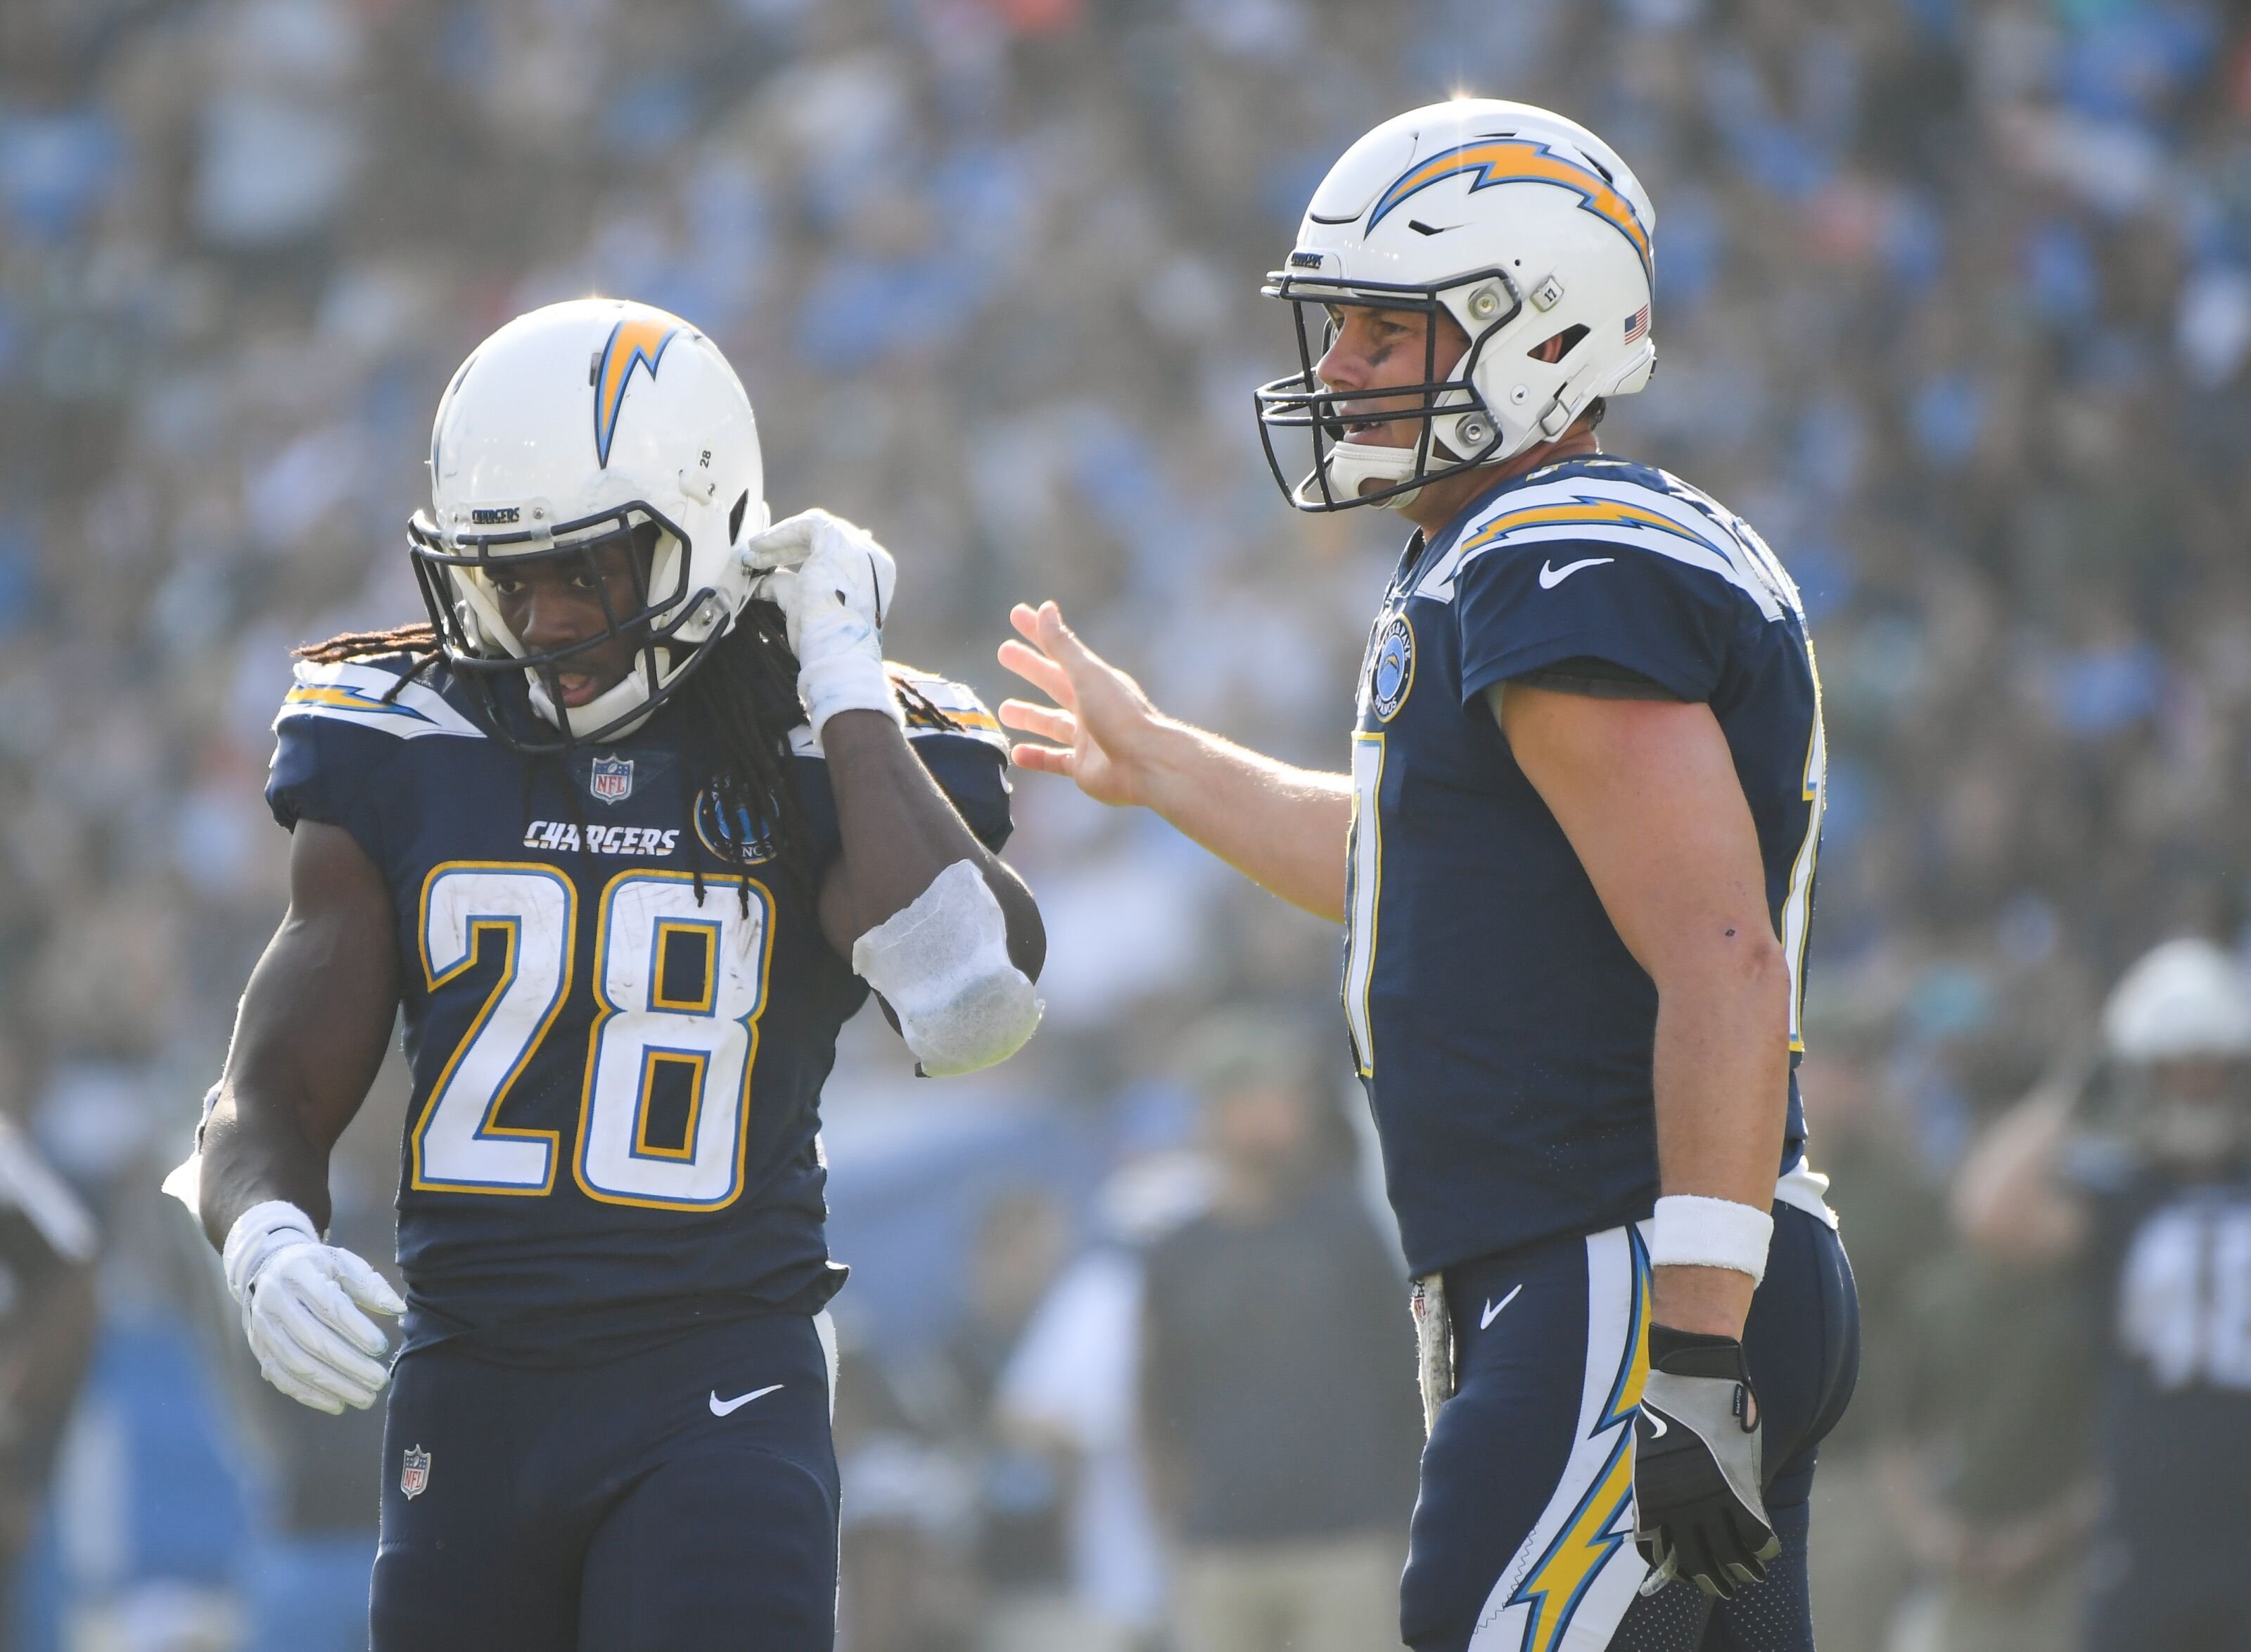 One dumb play call doomed the Chargers, and everyone should be ashamed